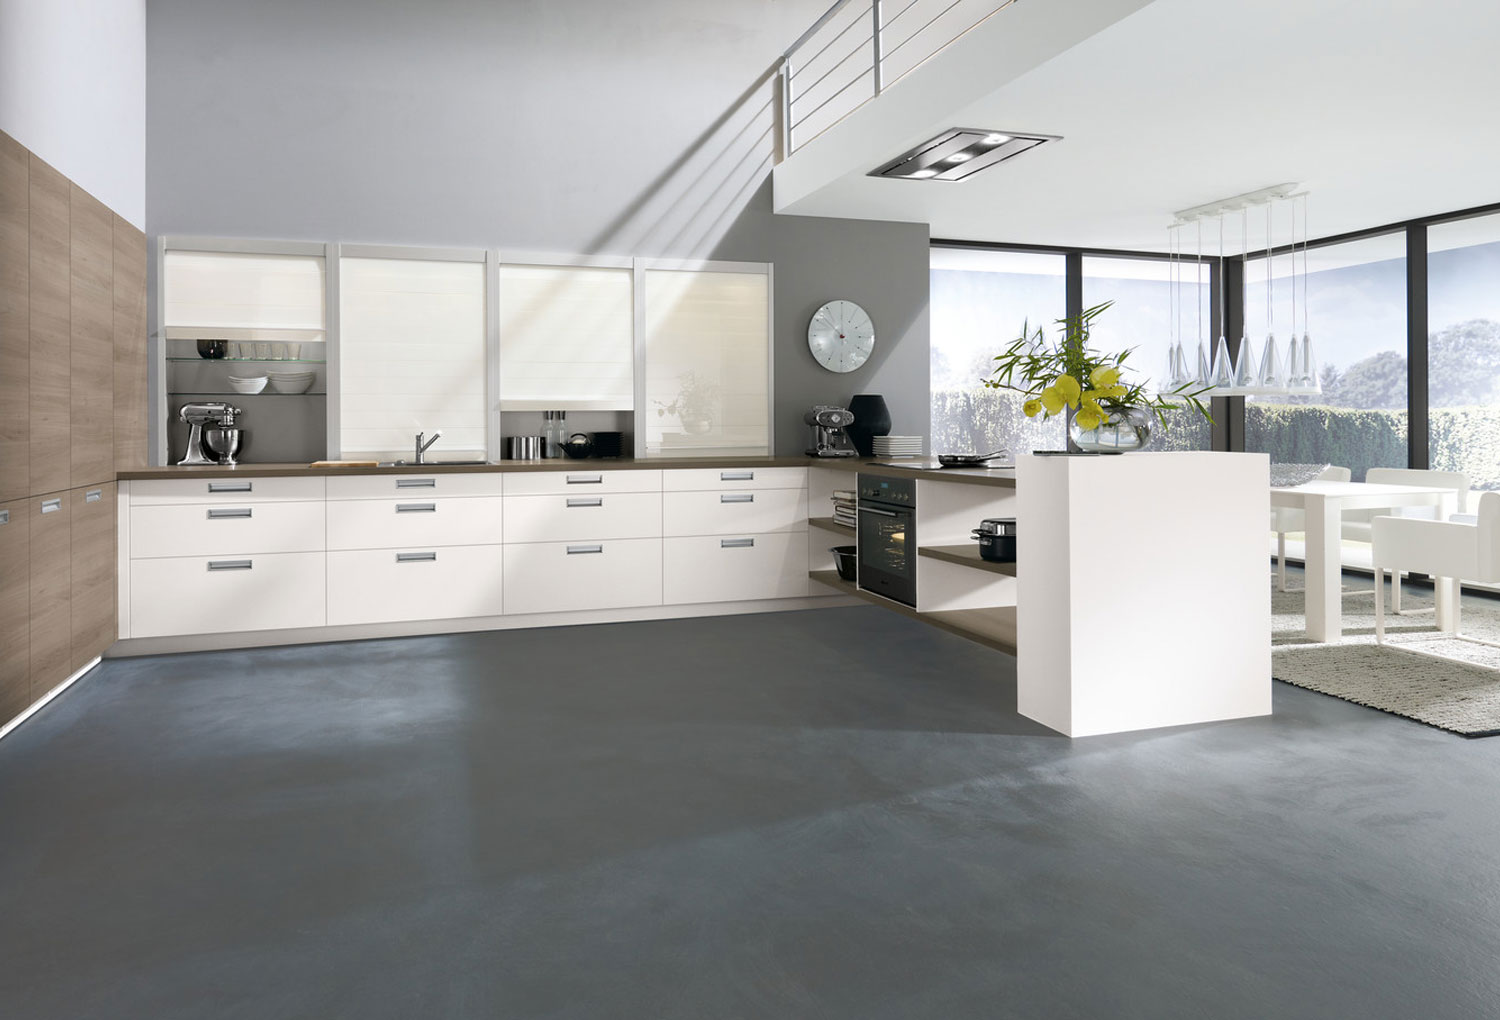 Pictures of ... Alno Contracts Kitchen Ranges - Alno Kitchen ... alno german kitchens